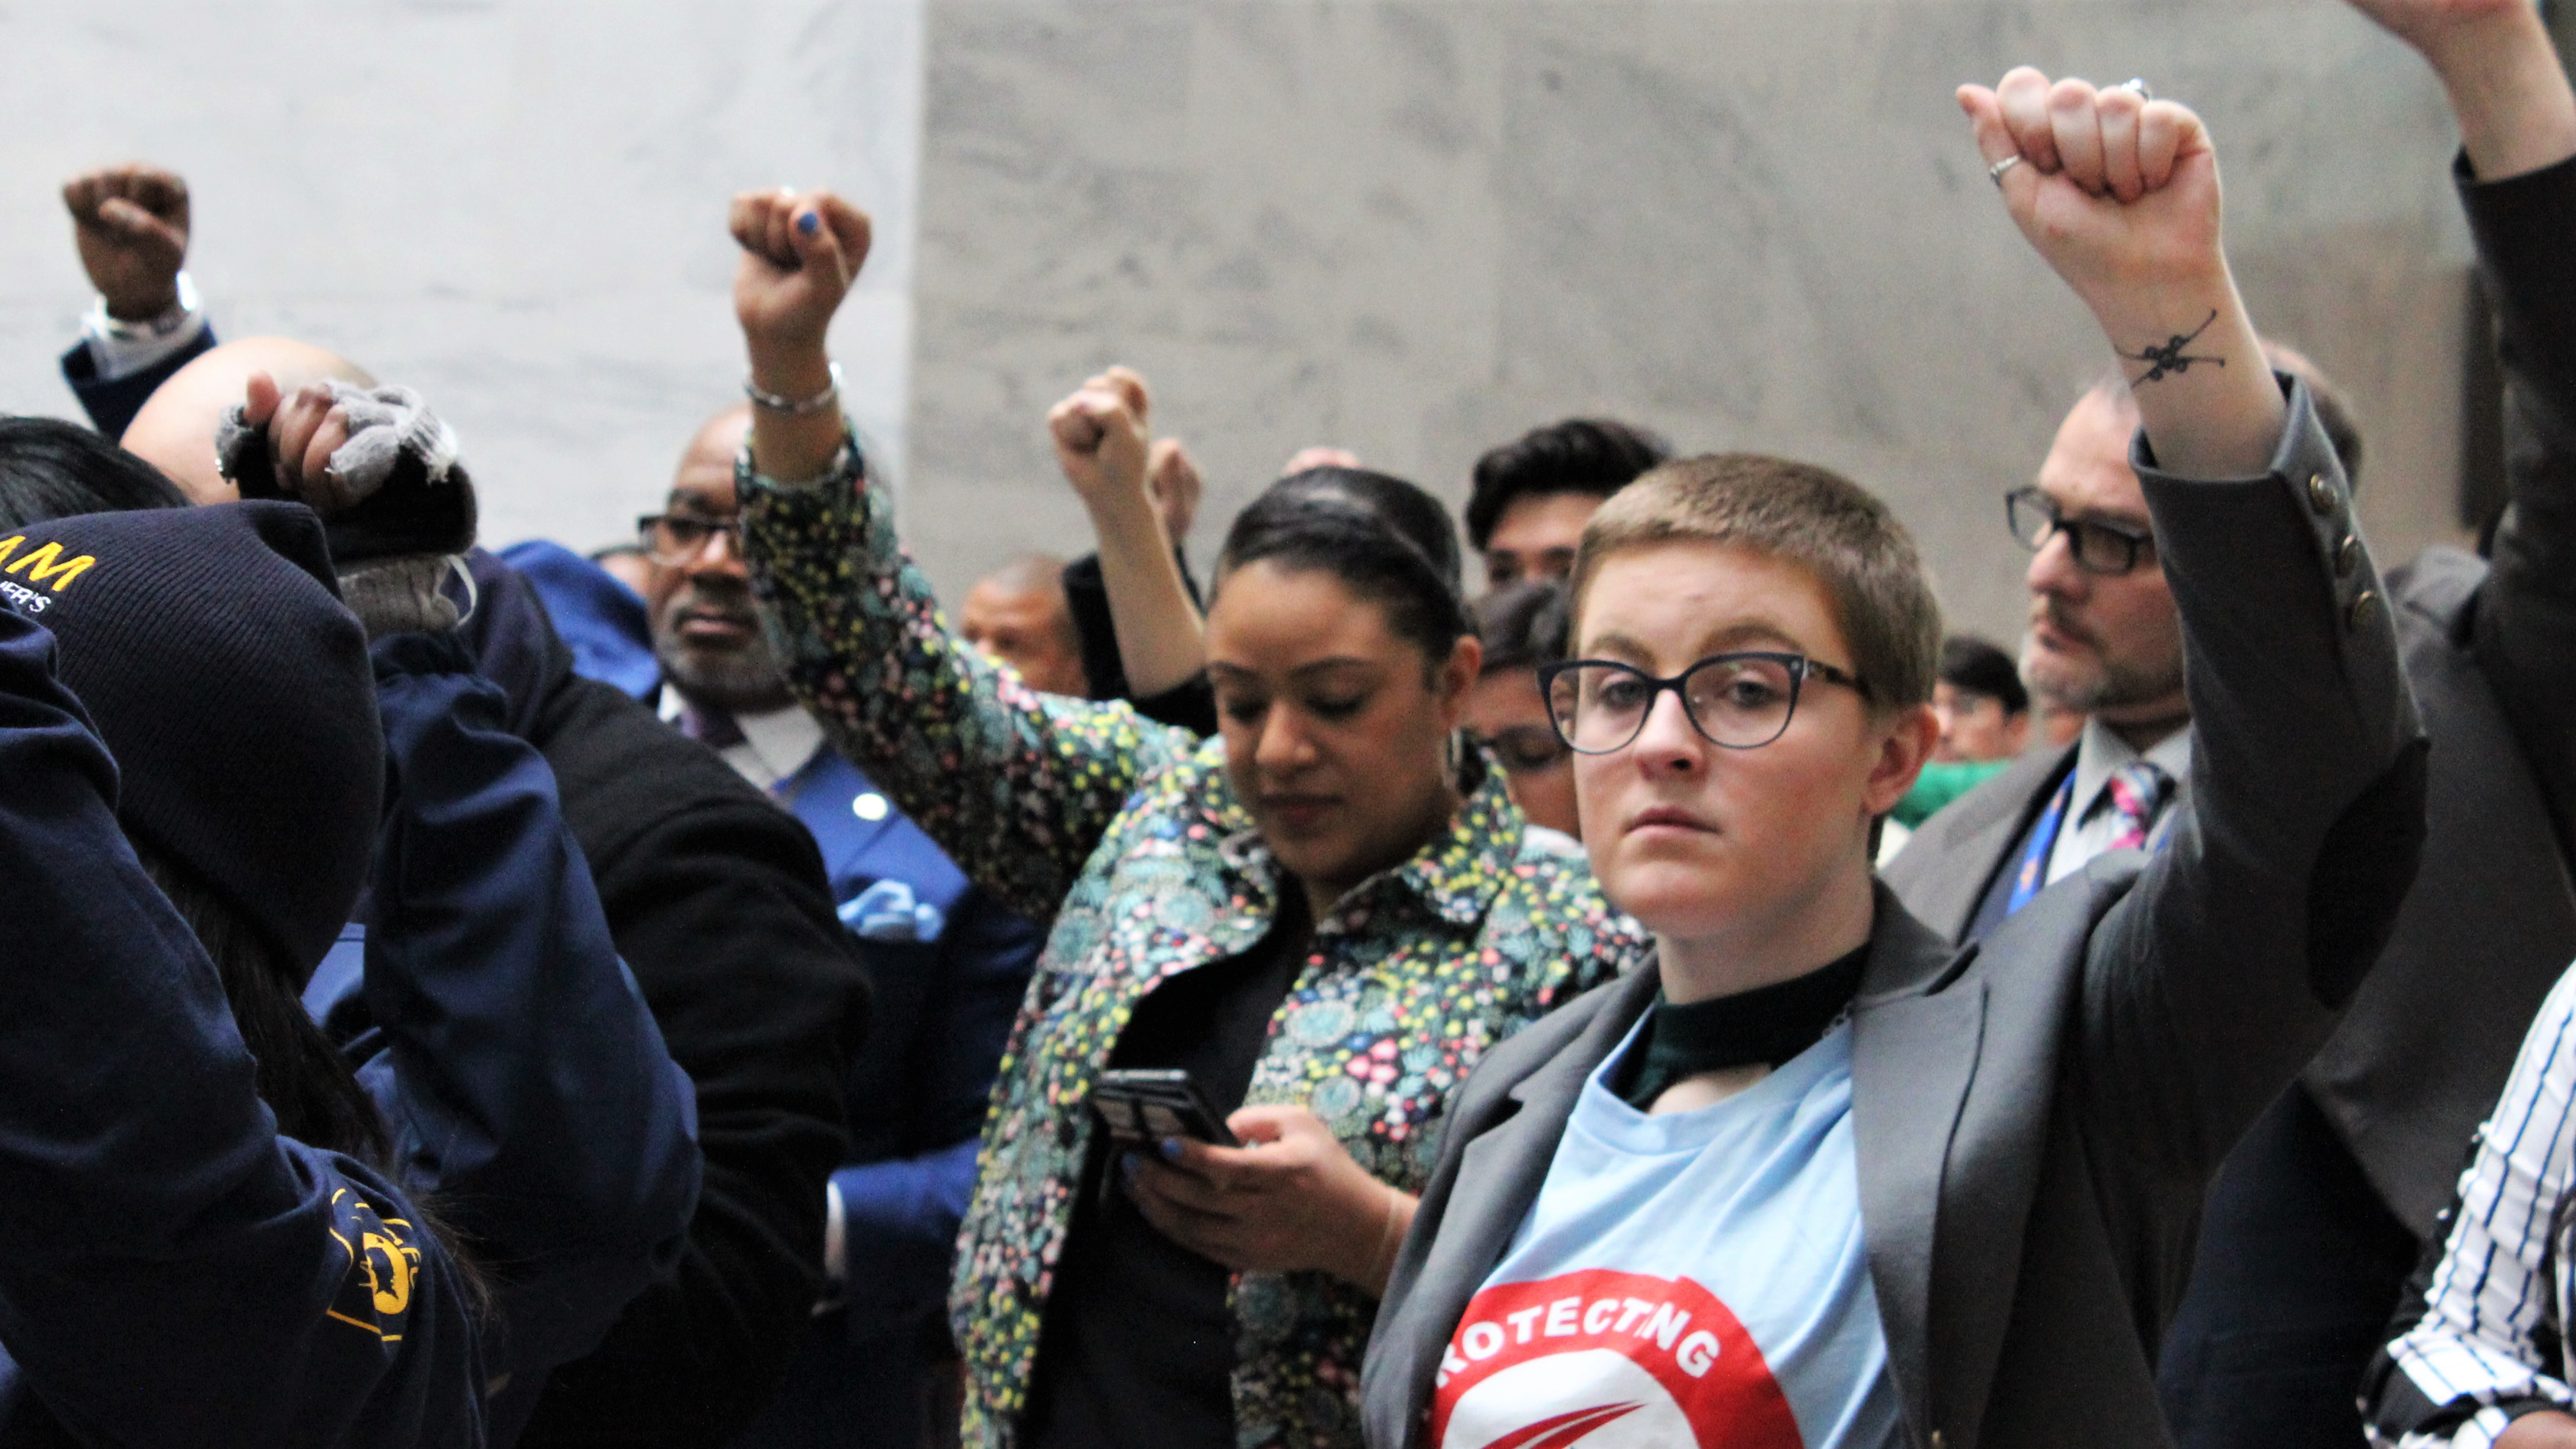 Members of the American Federation of Government Employees stood in 35 minutes of silence in the halls of the Hart Senate Office Building to protest any potential future government shutdowns. (Jessie Bur/Staff)